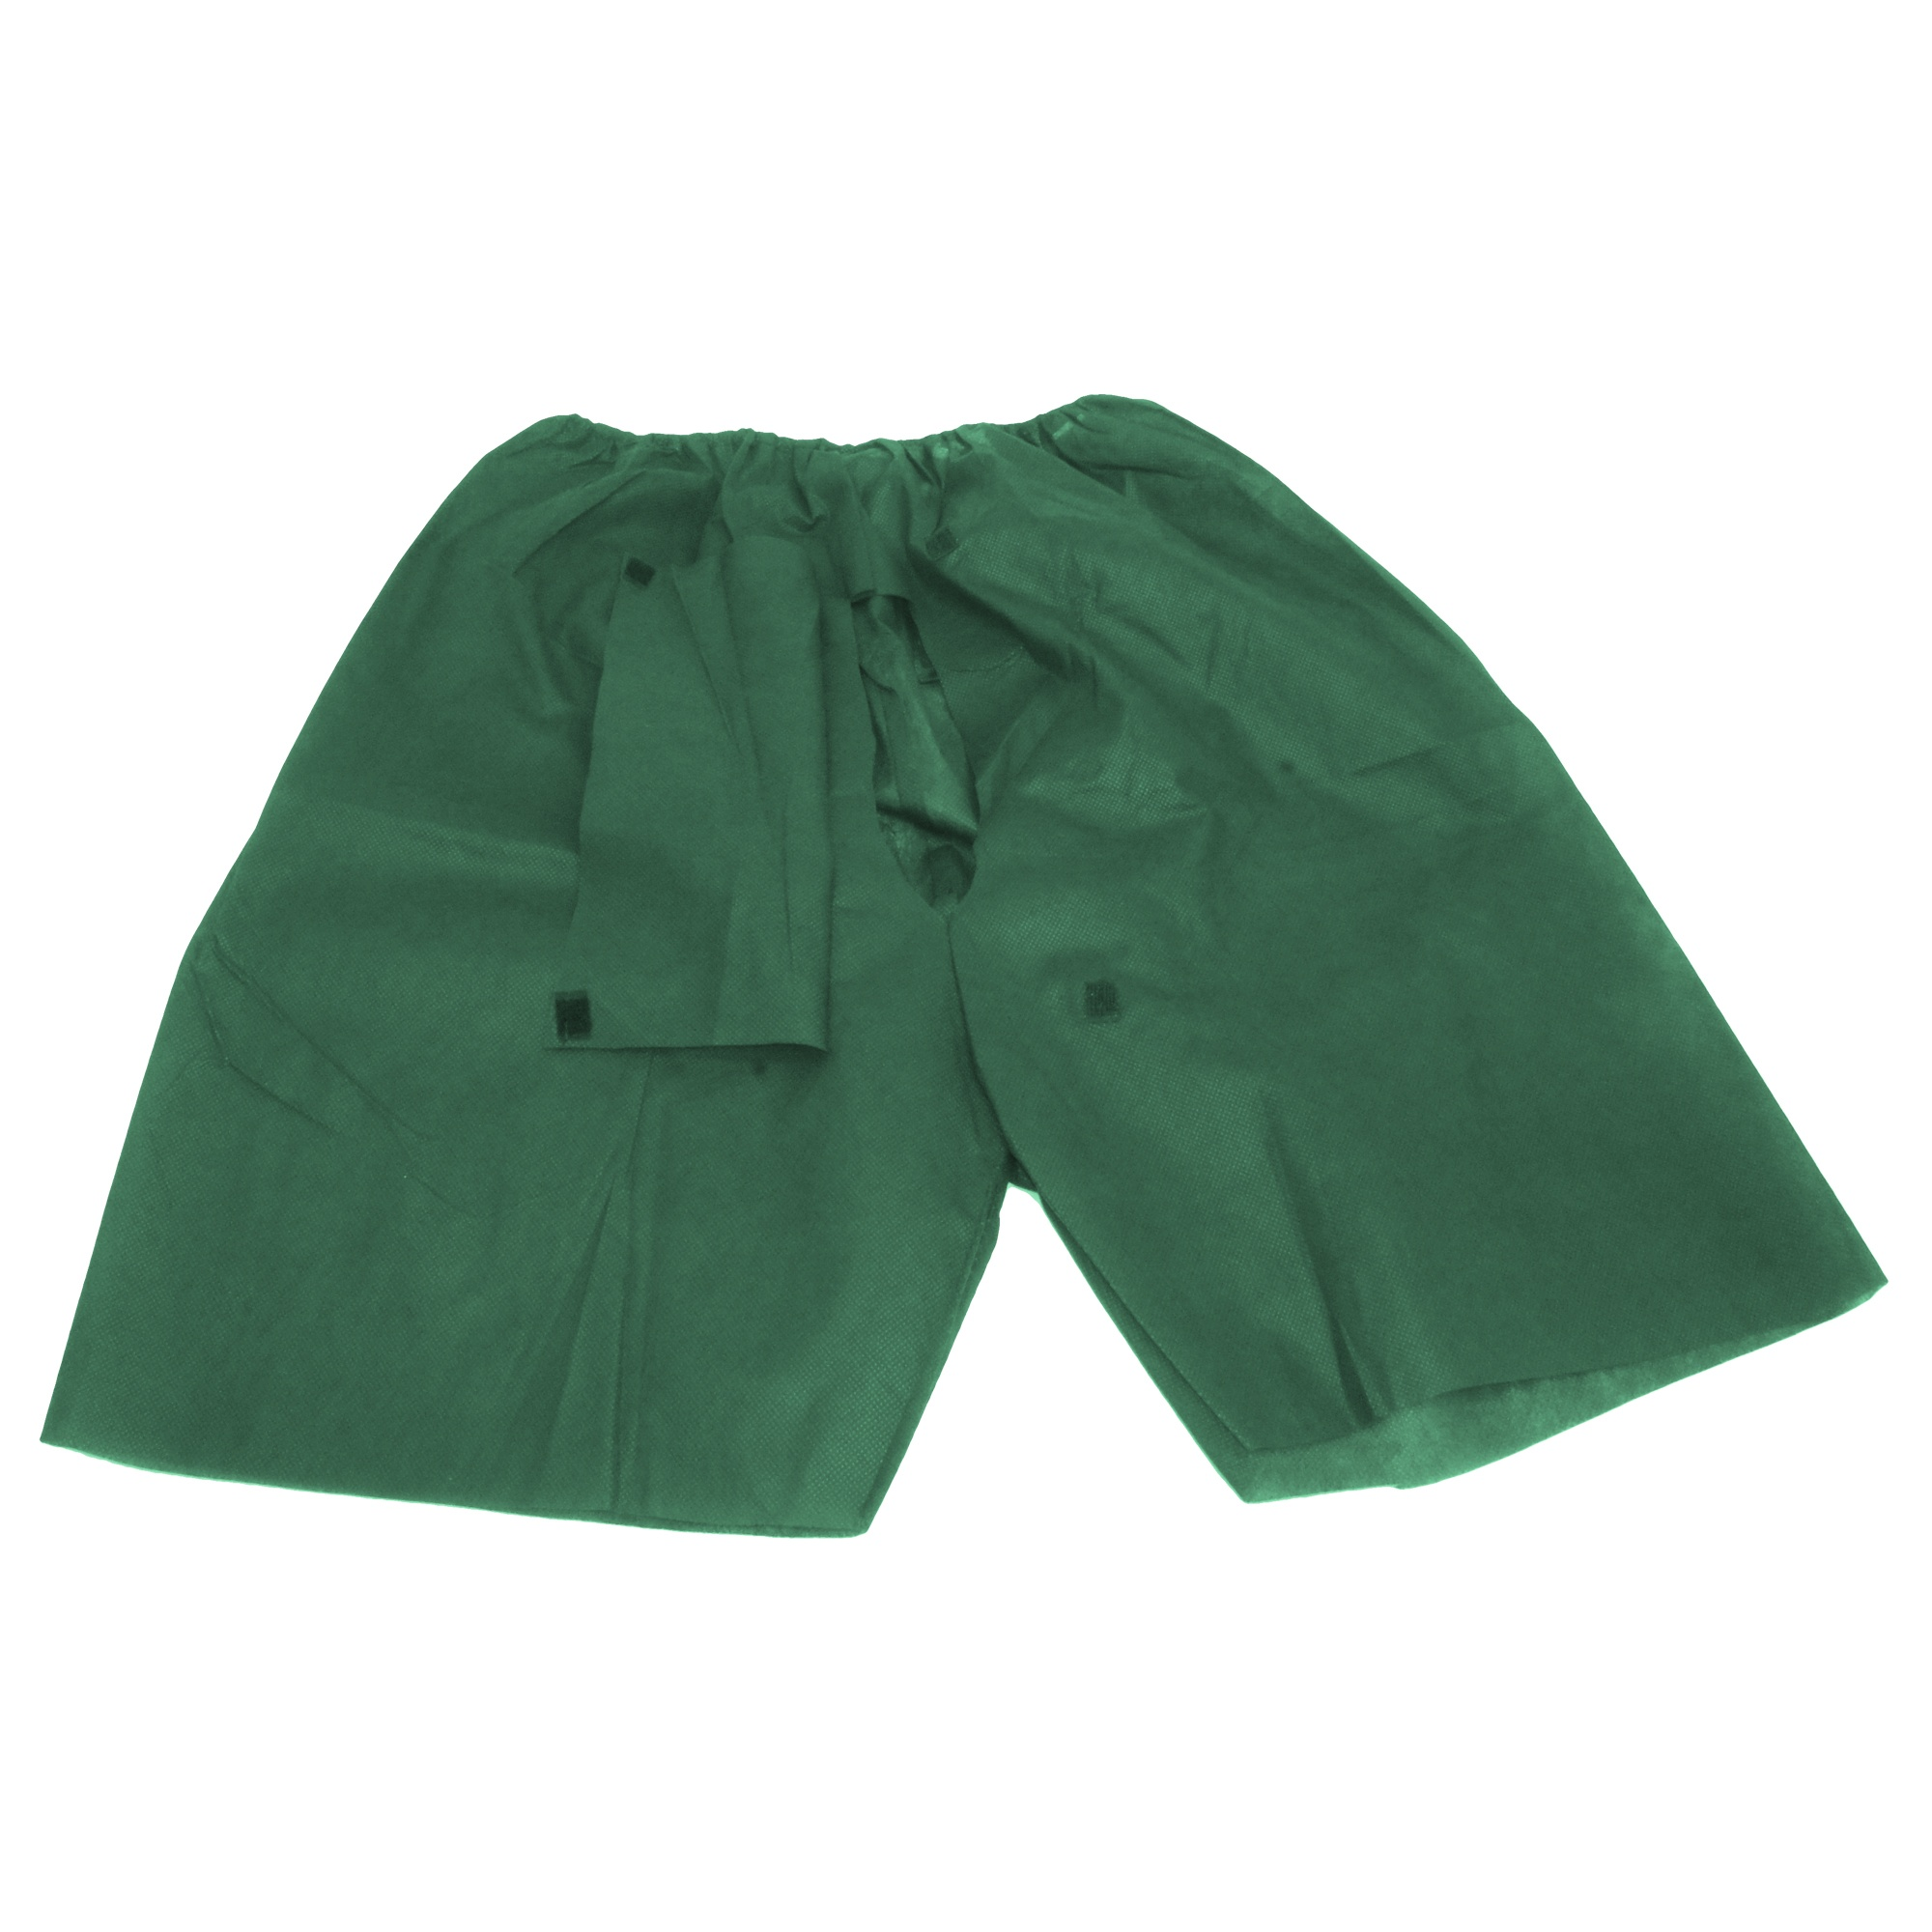 Colonoscopy pants with flap and Velcro Image